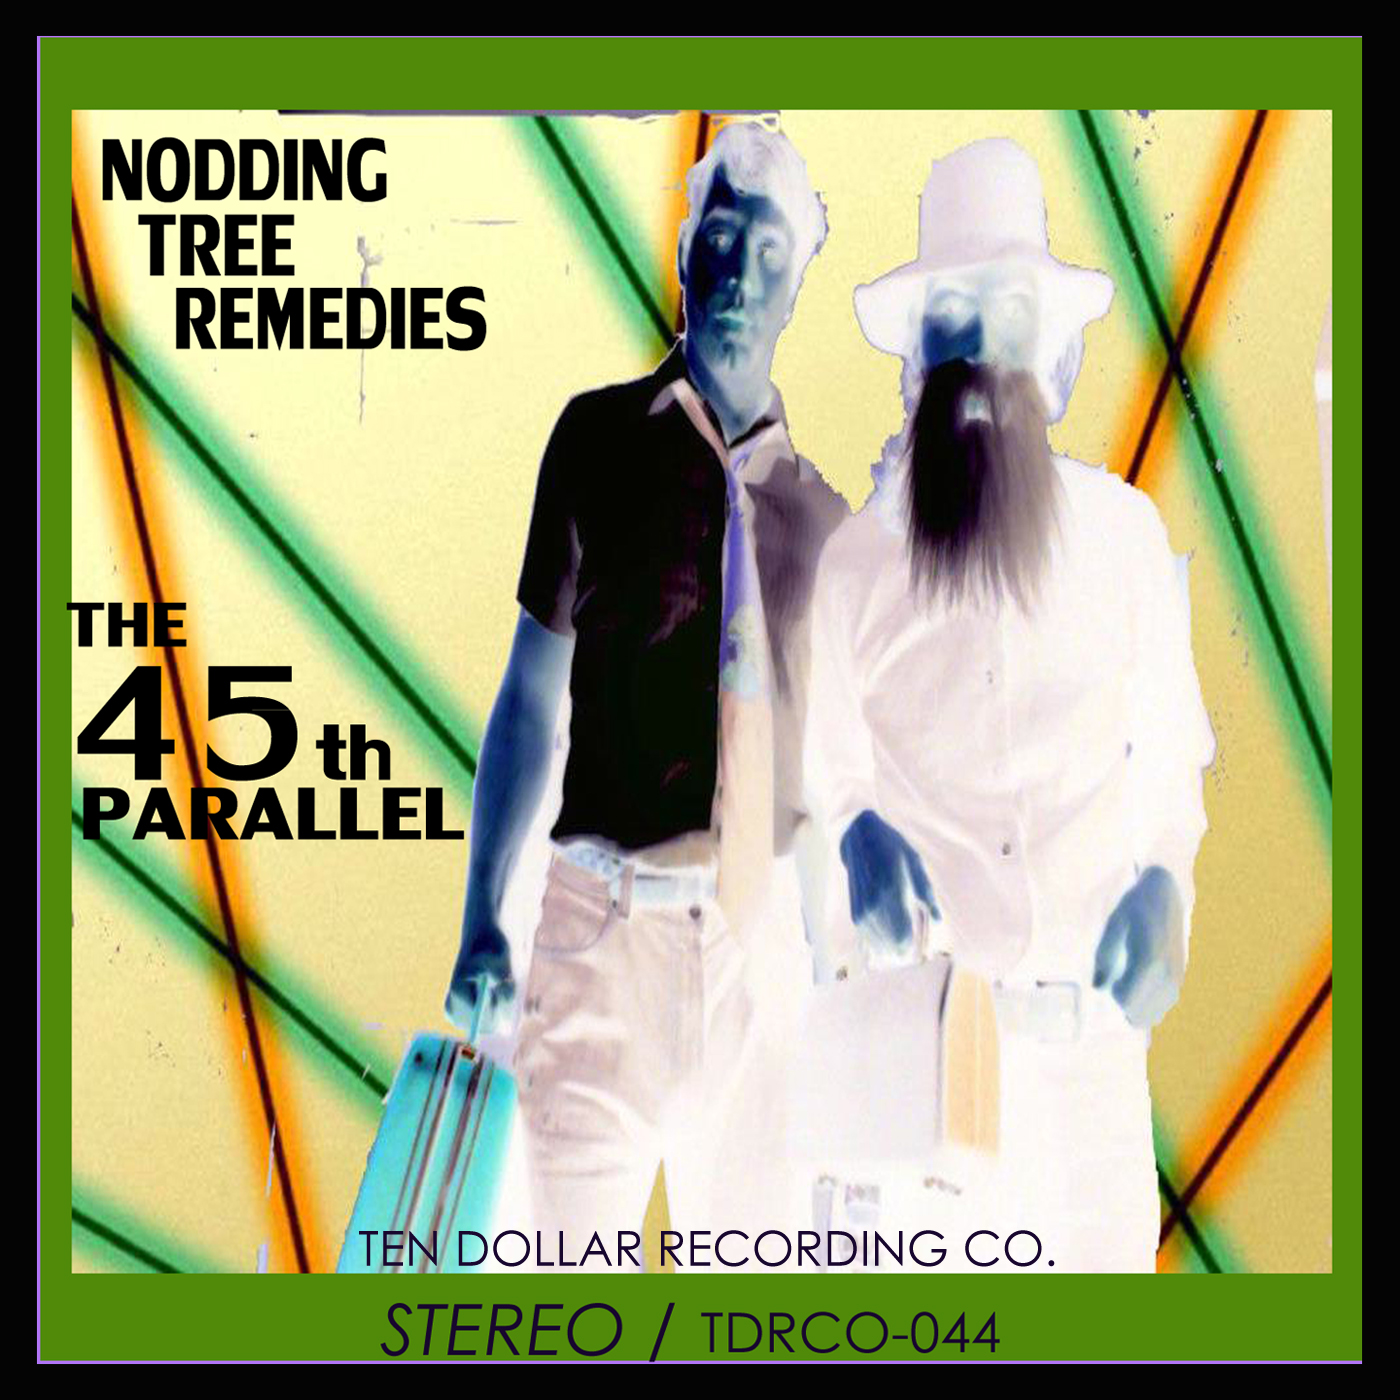 Nodding Tree Remedies - The 45th Parallel